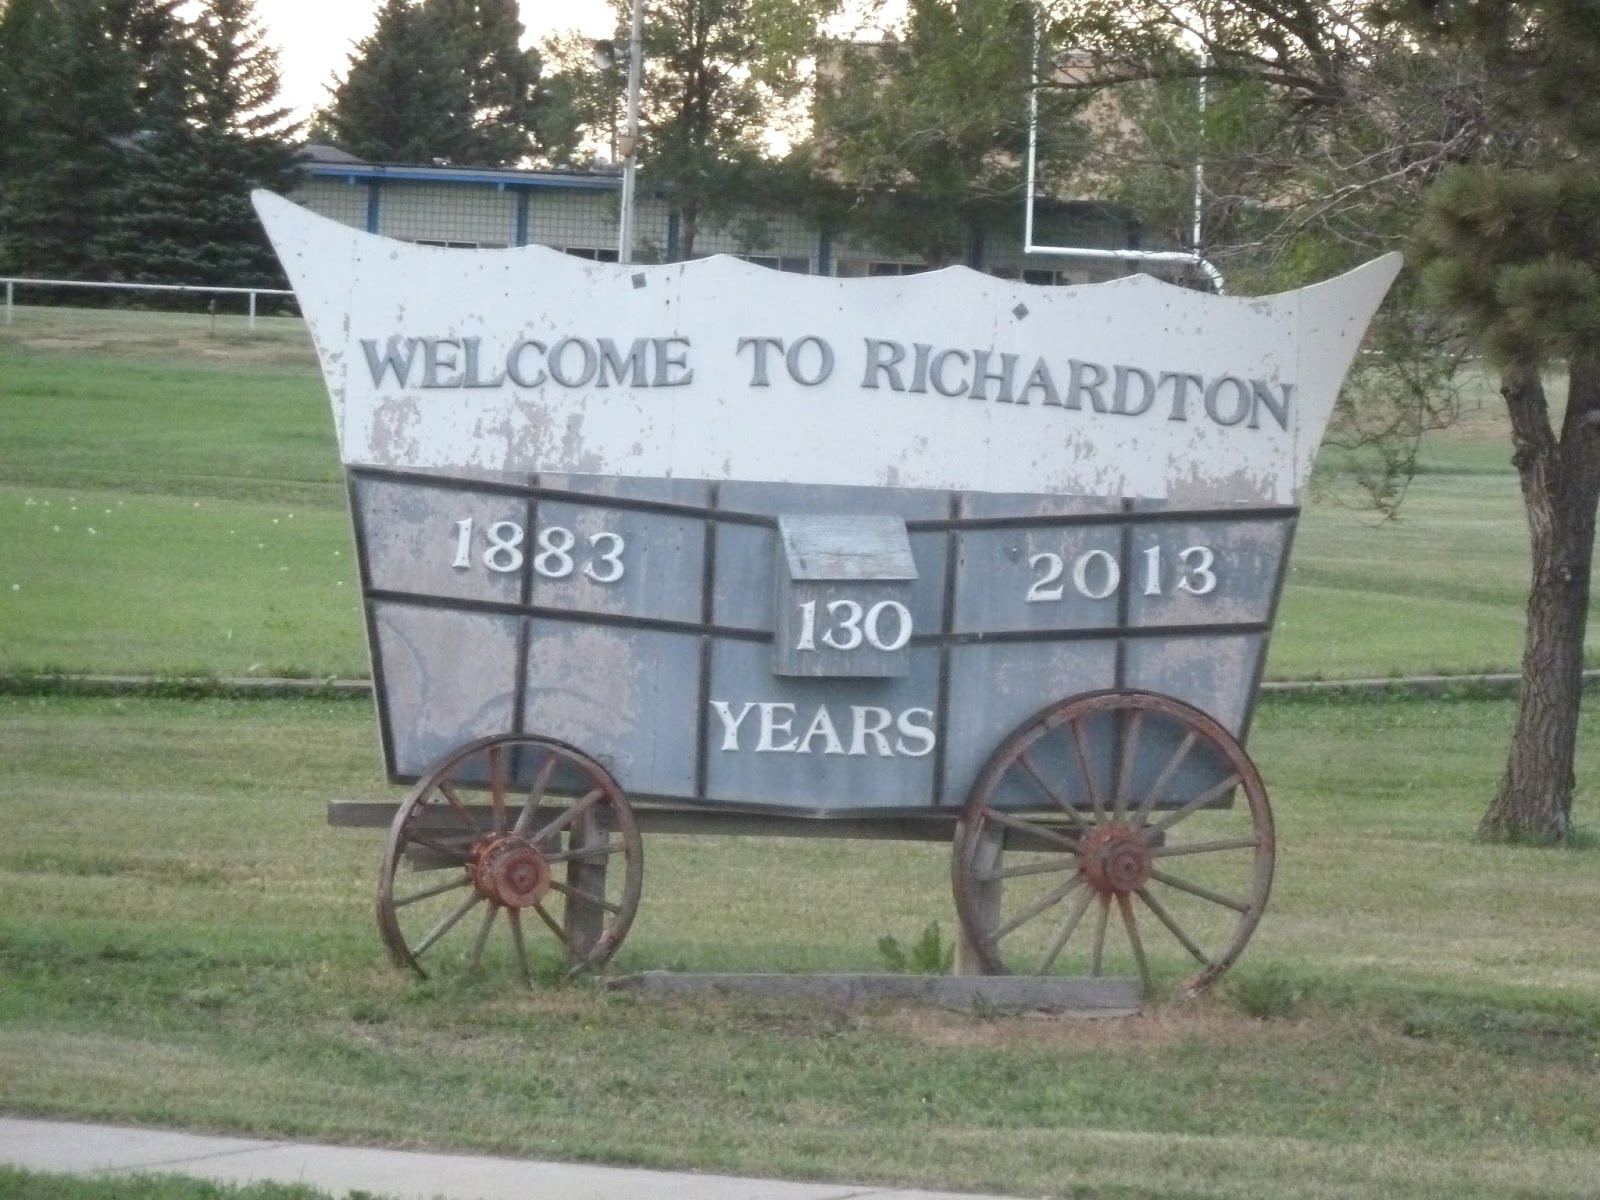 richardton singles Search all richardton, nd sheriff sales that are soon to be auctioned off get an amazing deal by purchasing a sheriff sale listing find all information about upcoming sheriff sales near you.